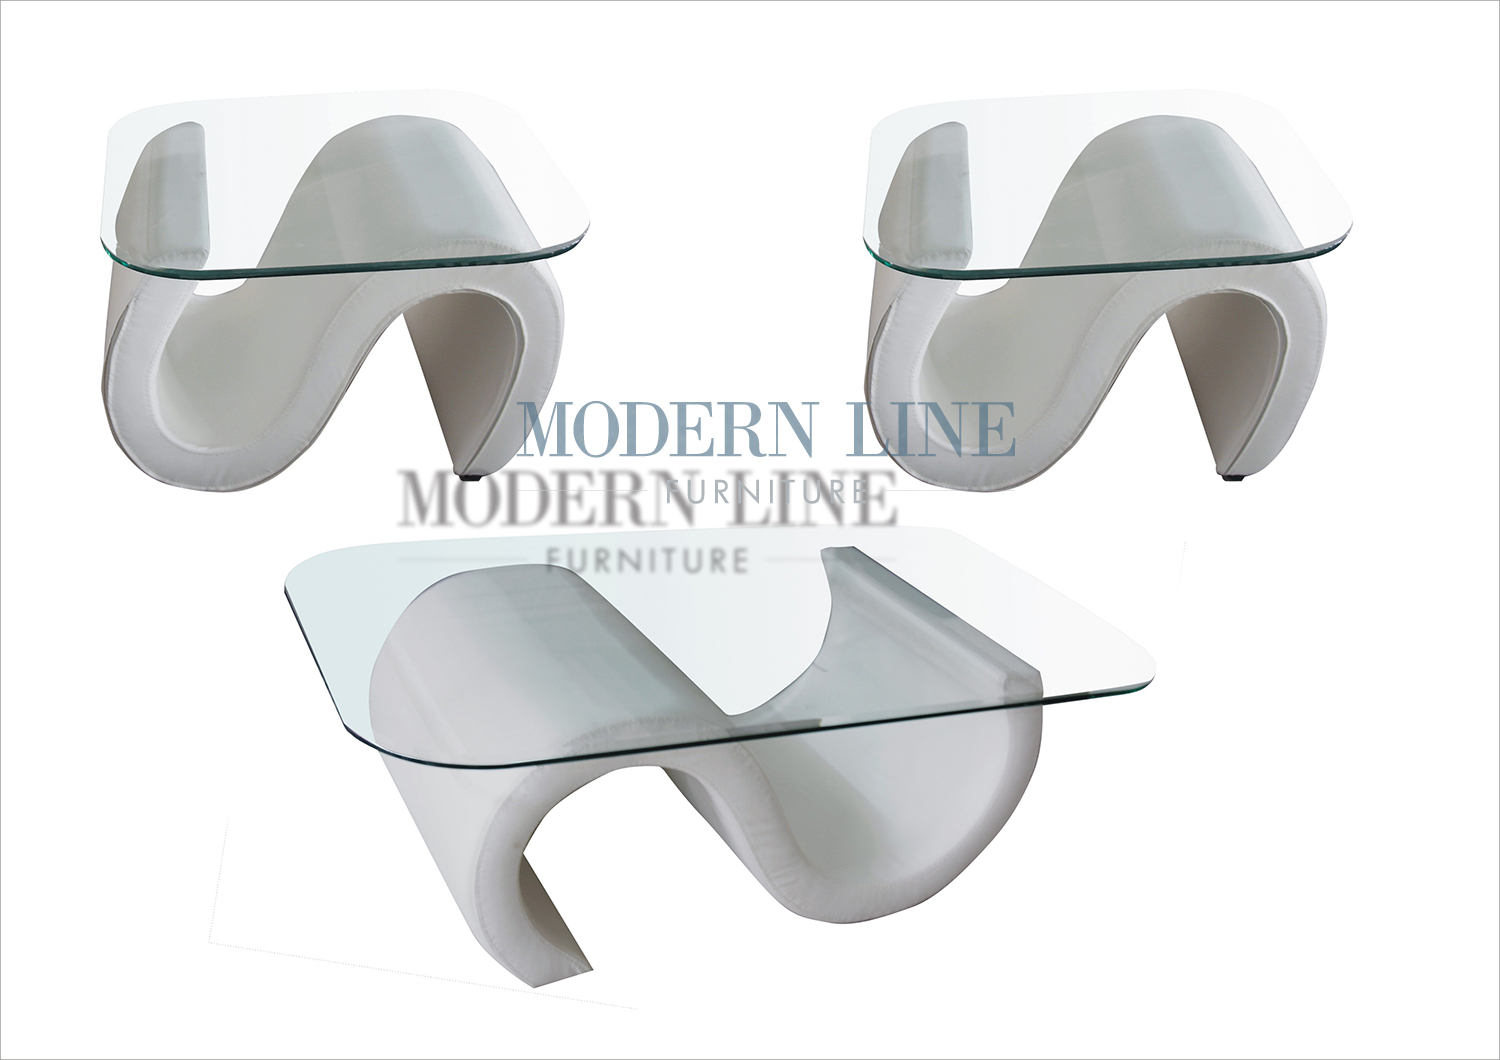 Modern Line Furniture Commercial Furniture Custom Made Furniture Clearance Visit Our Commercial Product Showroom To Save Up To 75 On All Floor